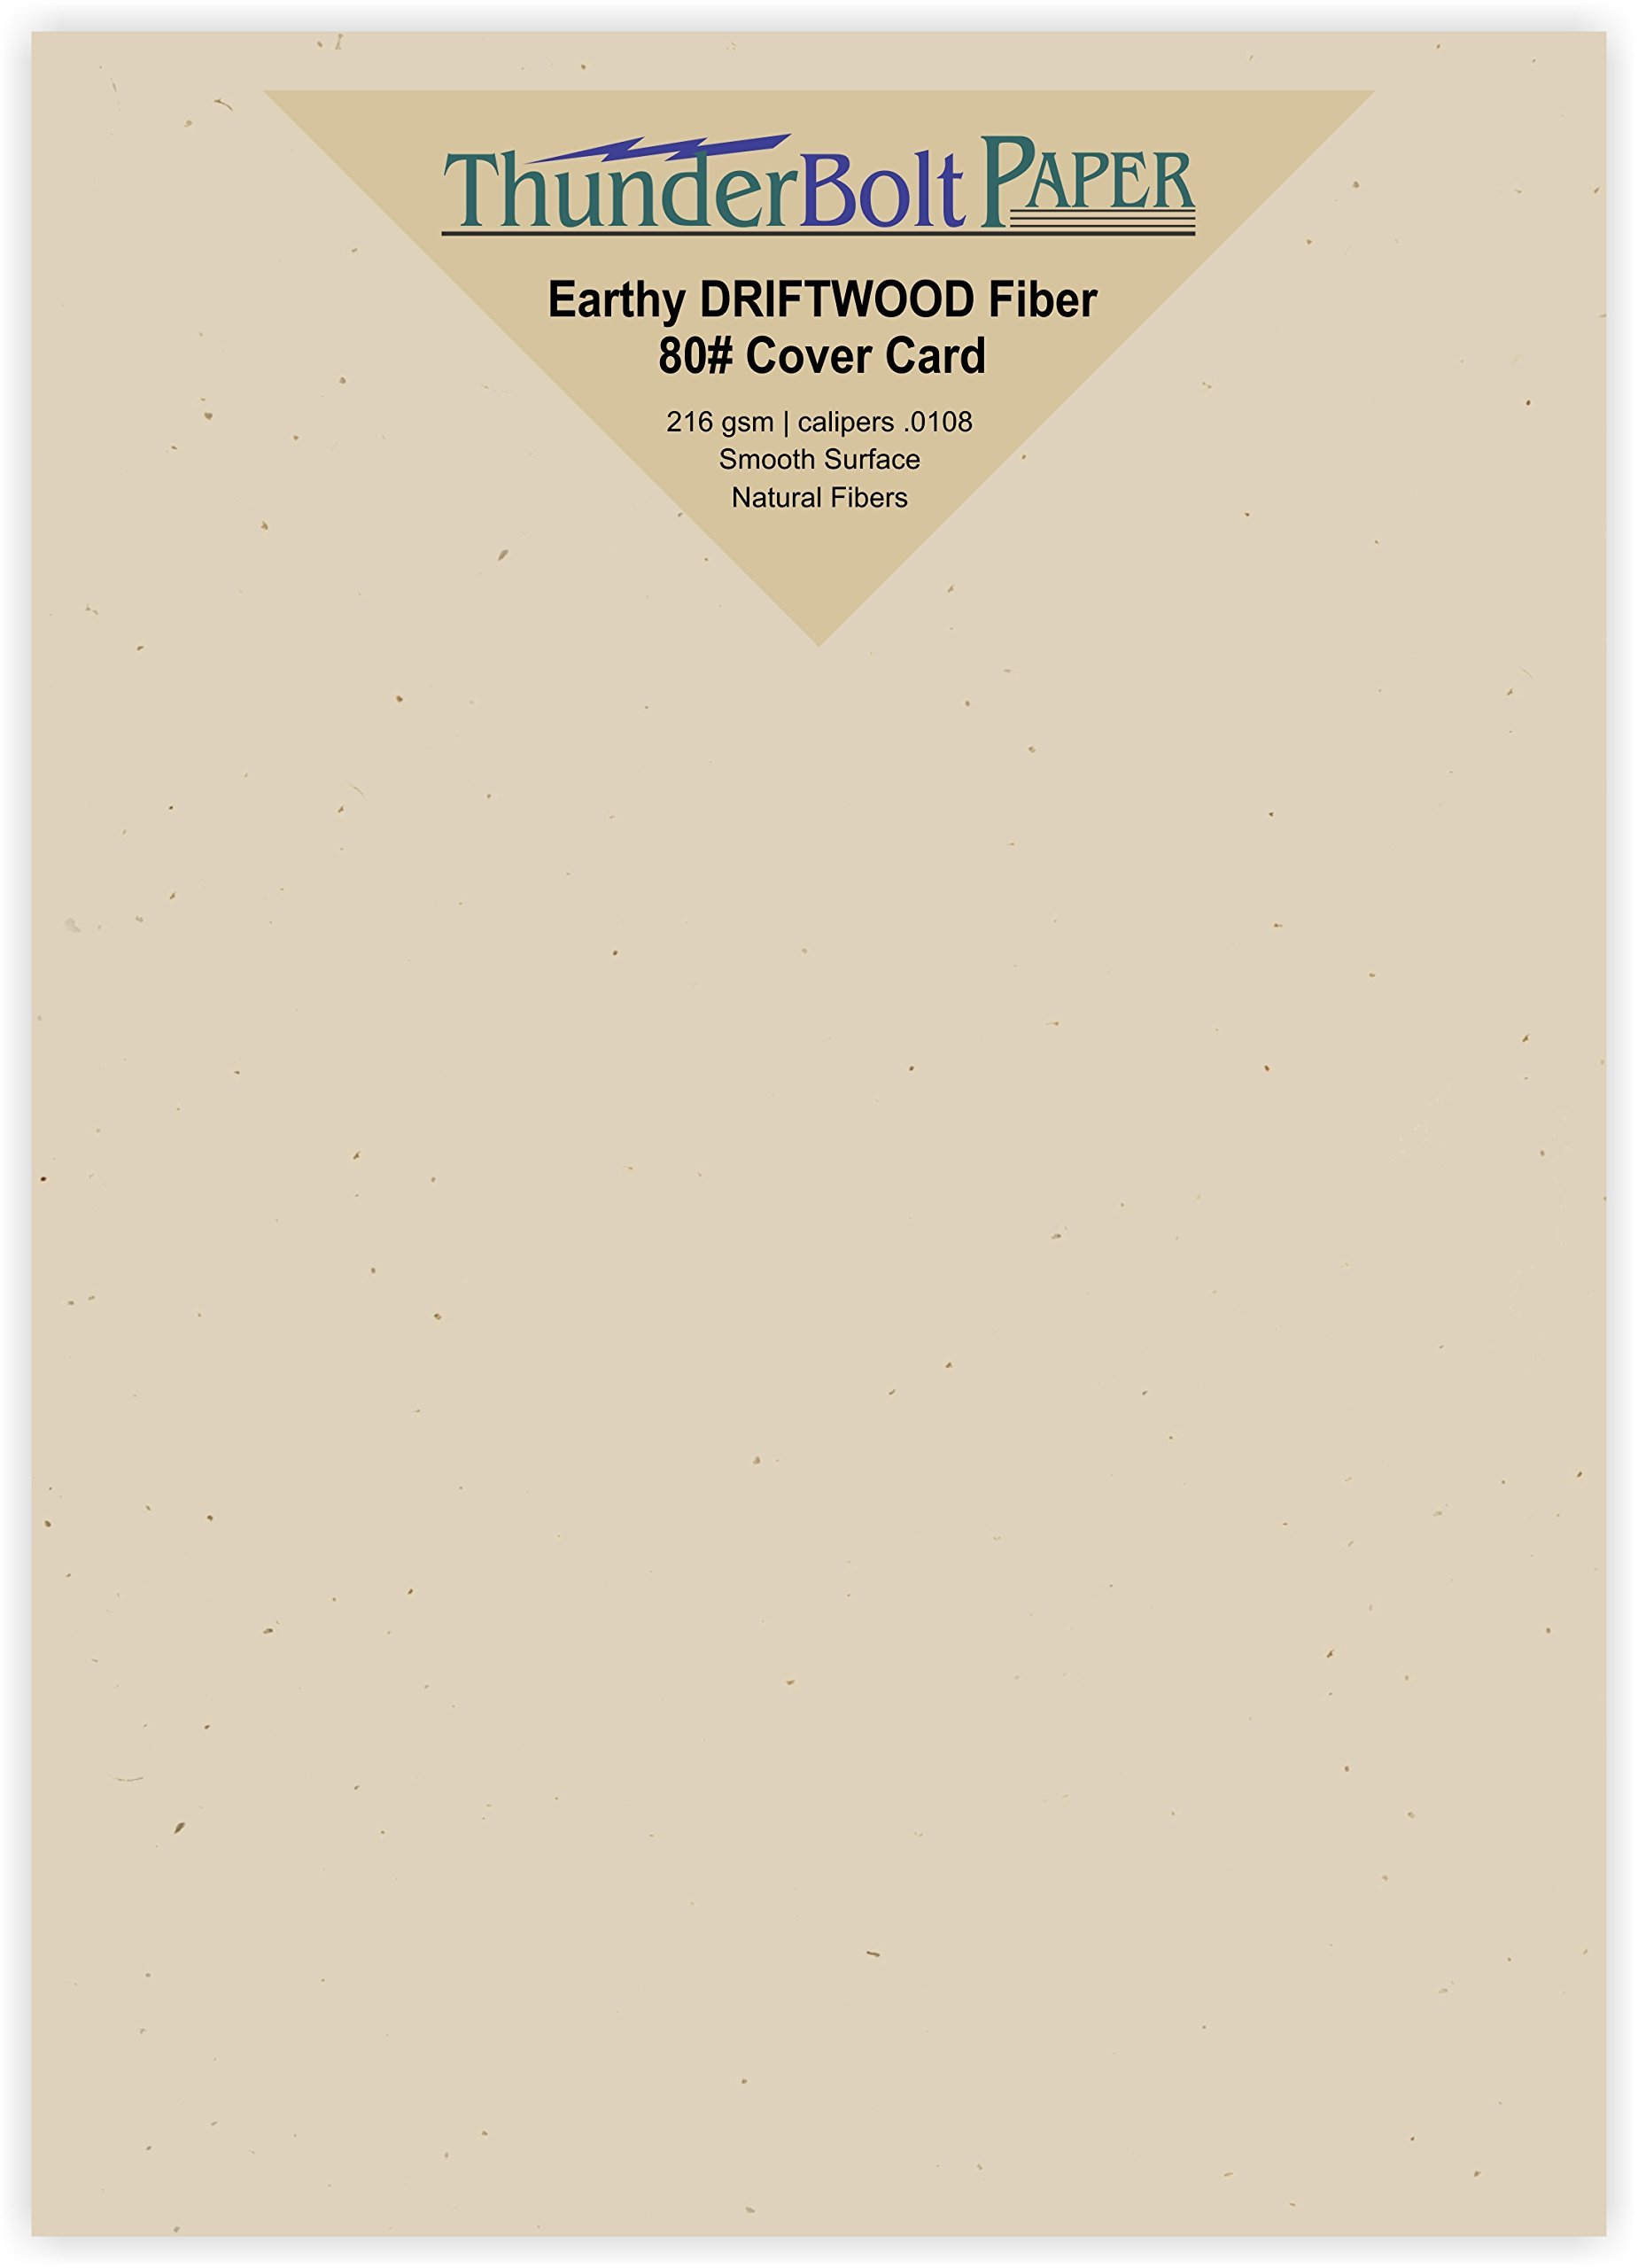 300 Earthy Driftwood Tan Fiber 80# Cover Paper Sheets - 5.5'' X 8.5'' (5.5X8.5 Inches) Half Letter | Statement Size - Light Tan Color with Natural Fibers - Smooth Finish